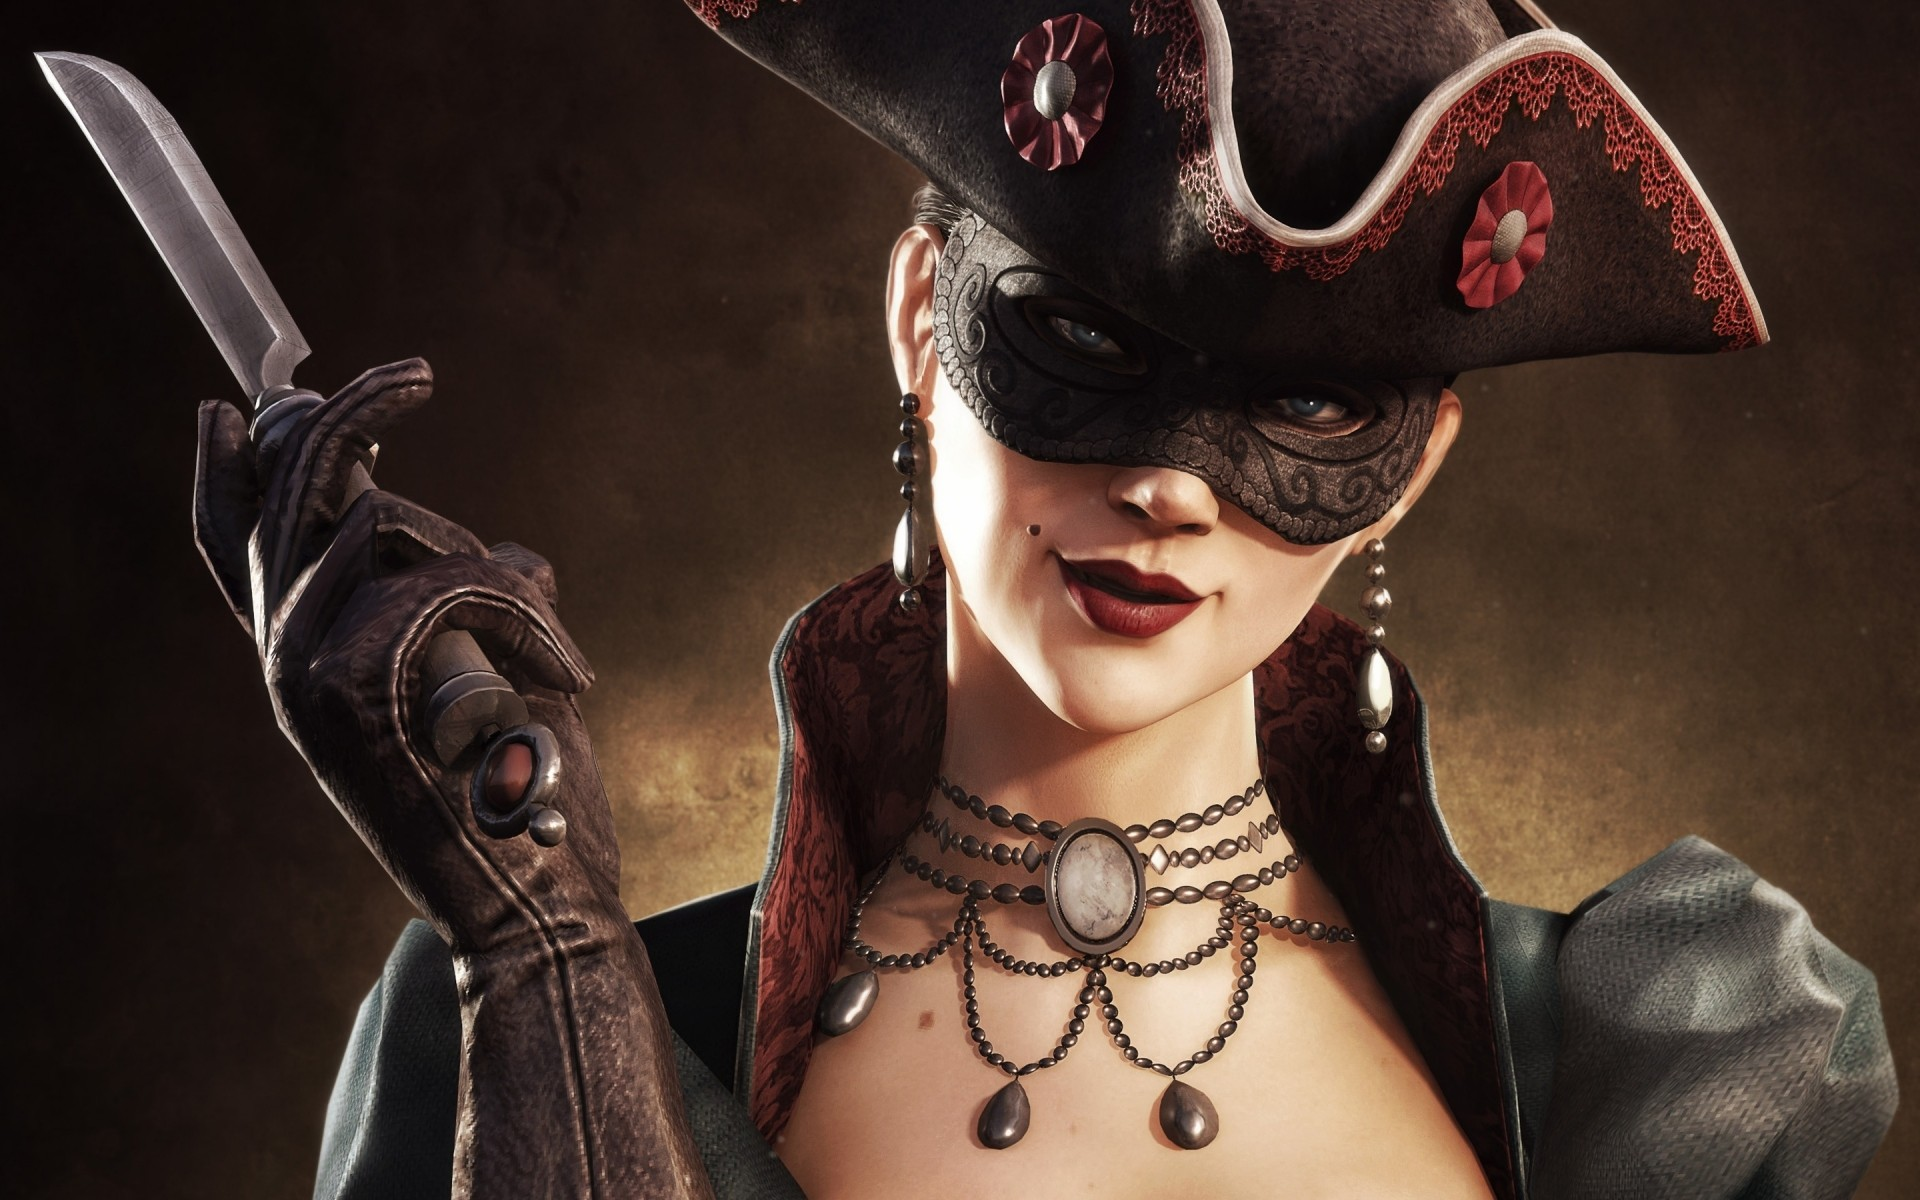 Girl From Assassins Creed 4 Free Wallpapers